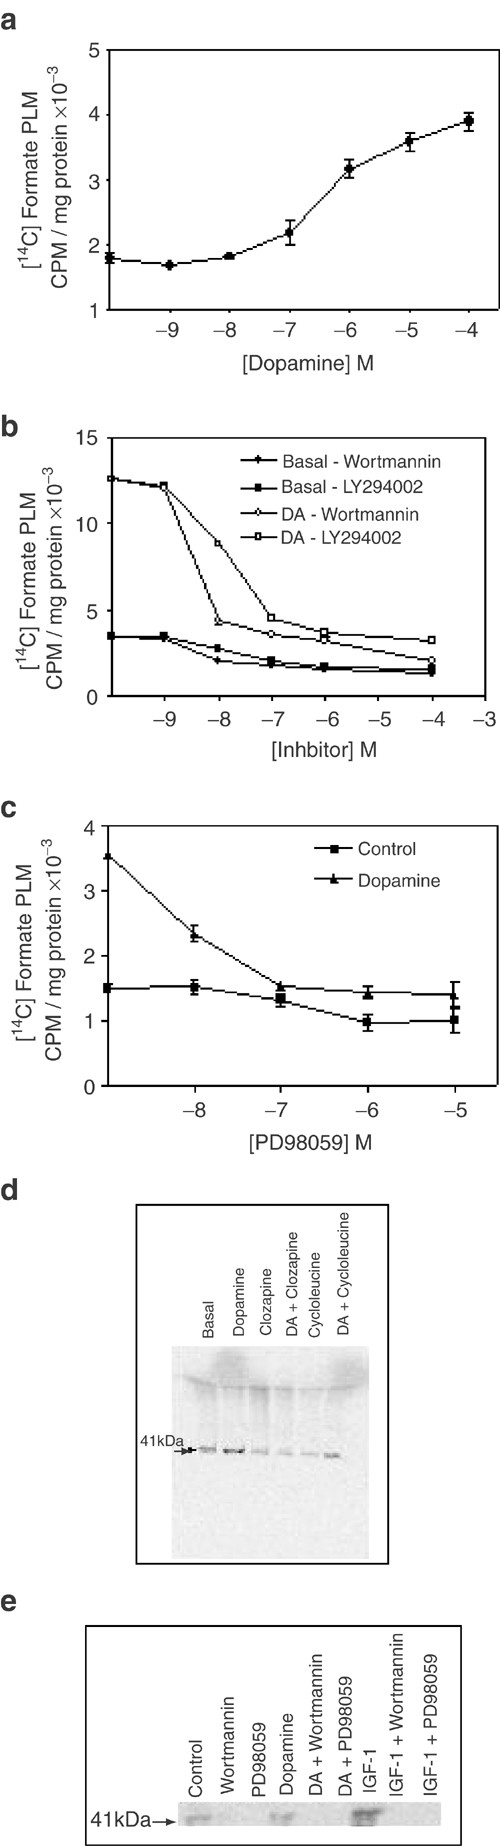 Activation of methionine synthase by insulin-like growth factor-1